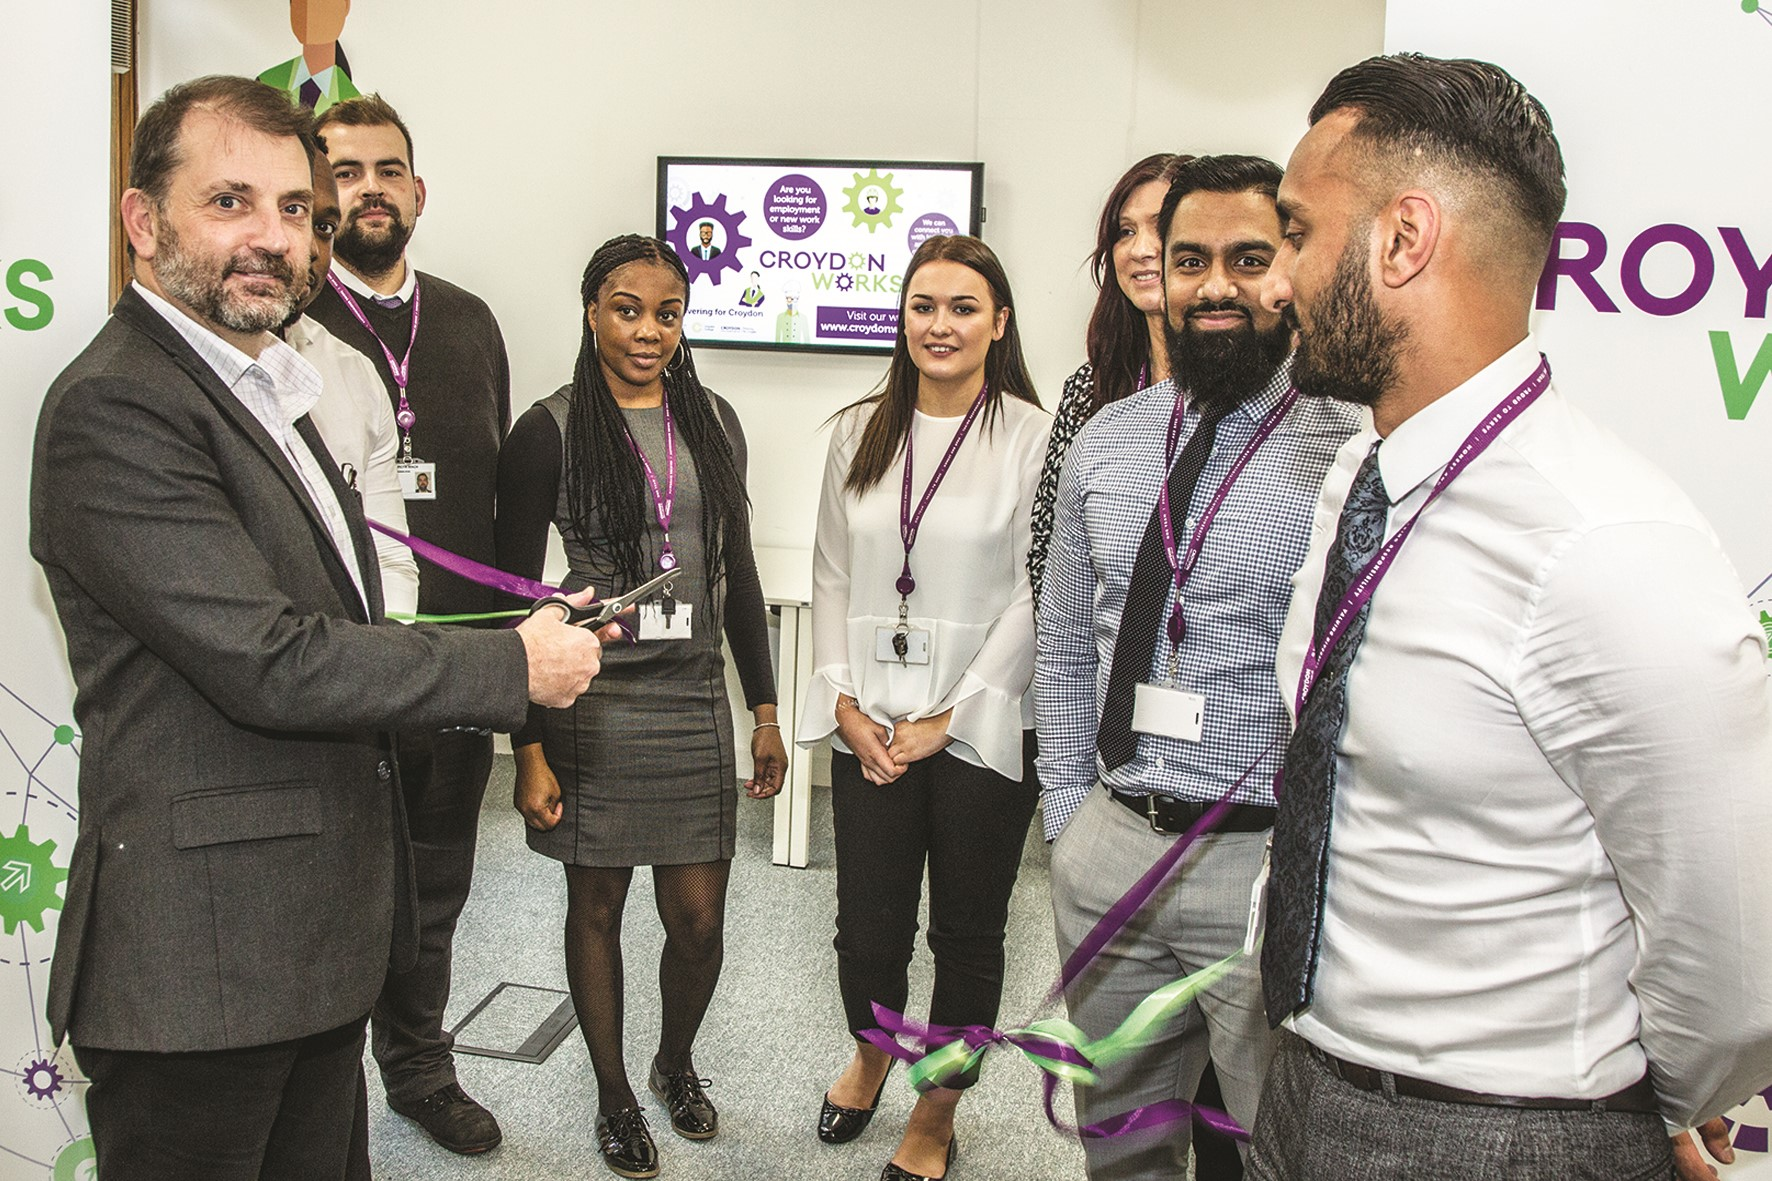 More help for job seekers as Croydon Works moves into new office